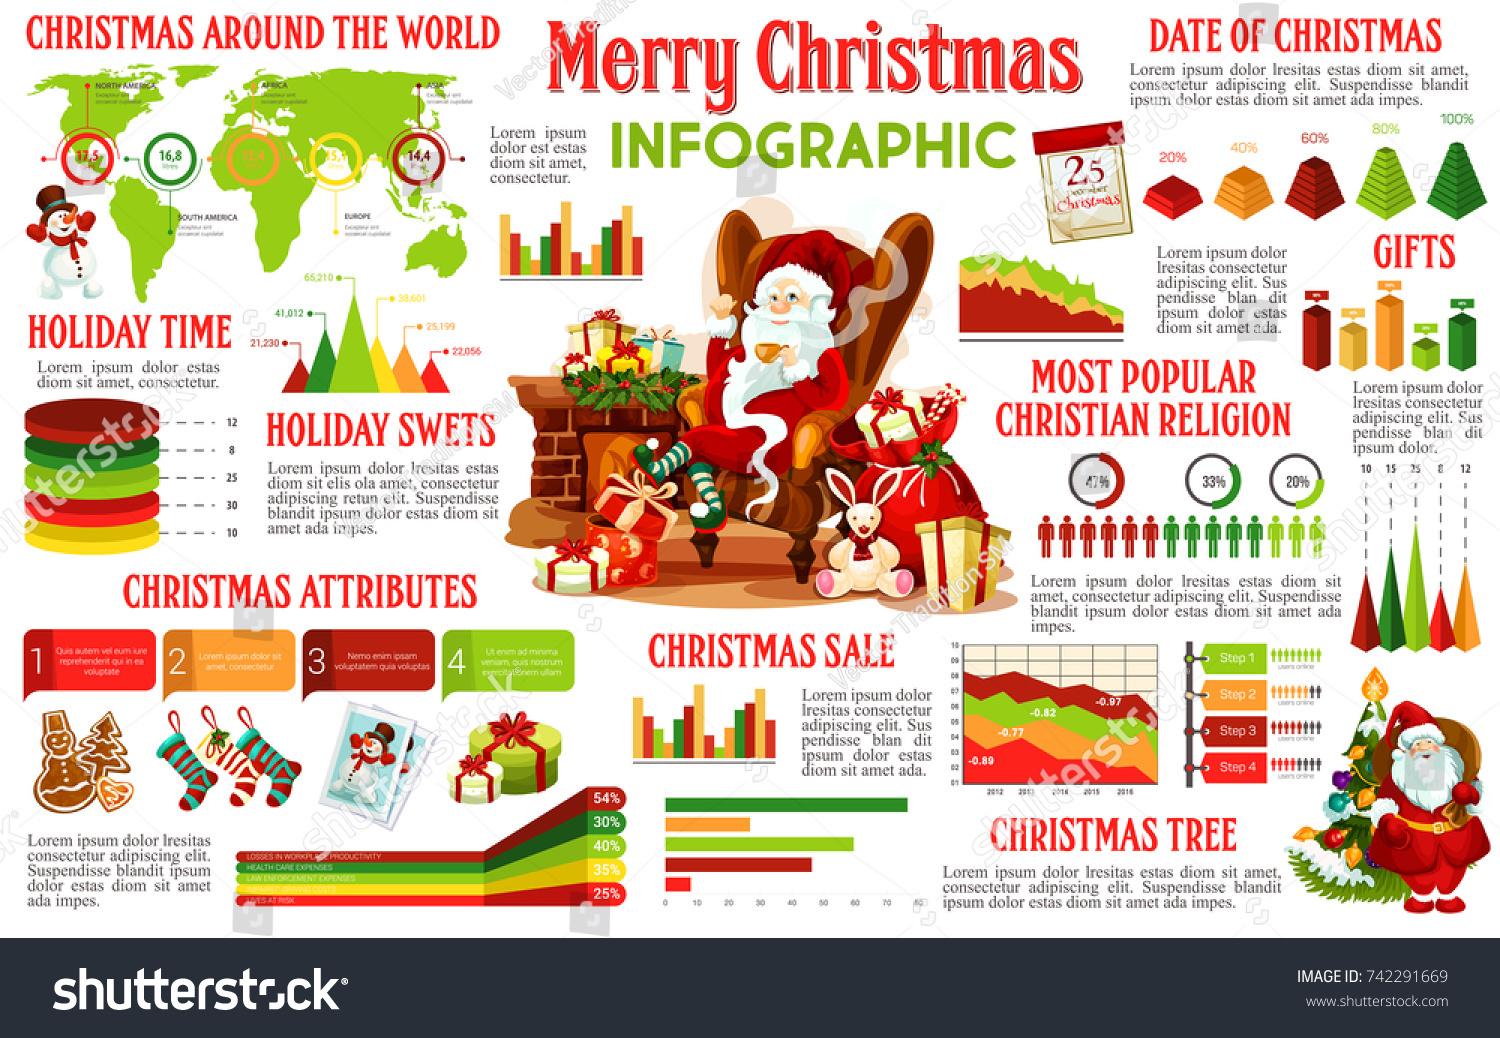 Christmas Infographic Holiday Celebration Traditions Graph Stock Tree Diagram Of And Chart Xmas Gift